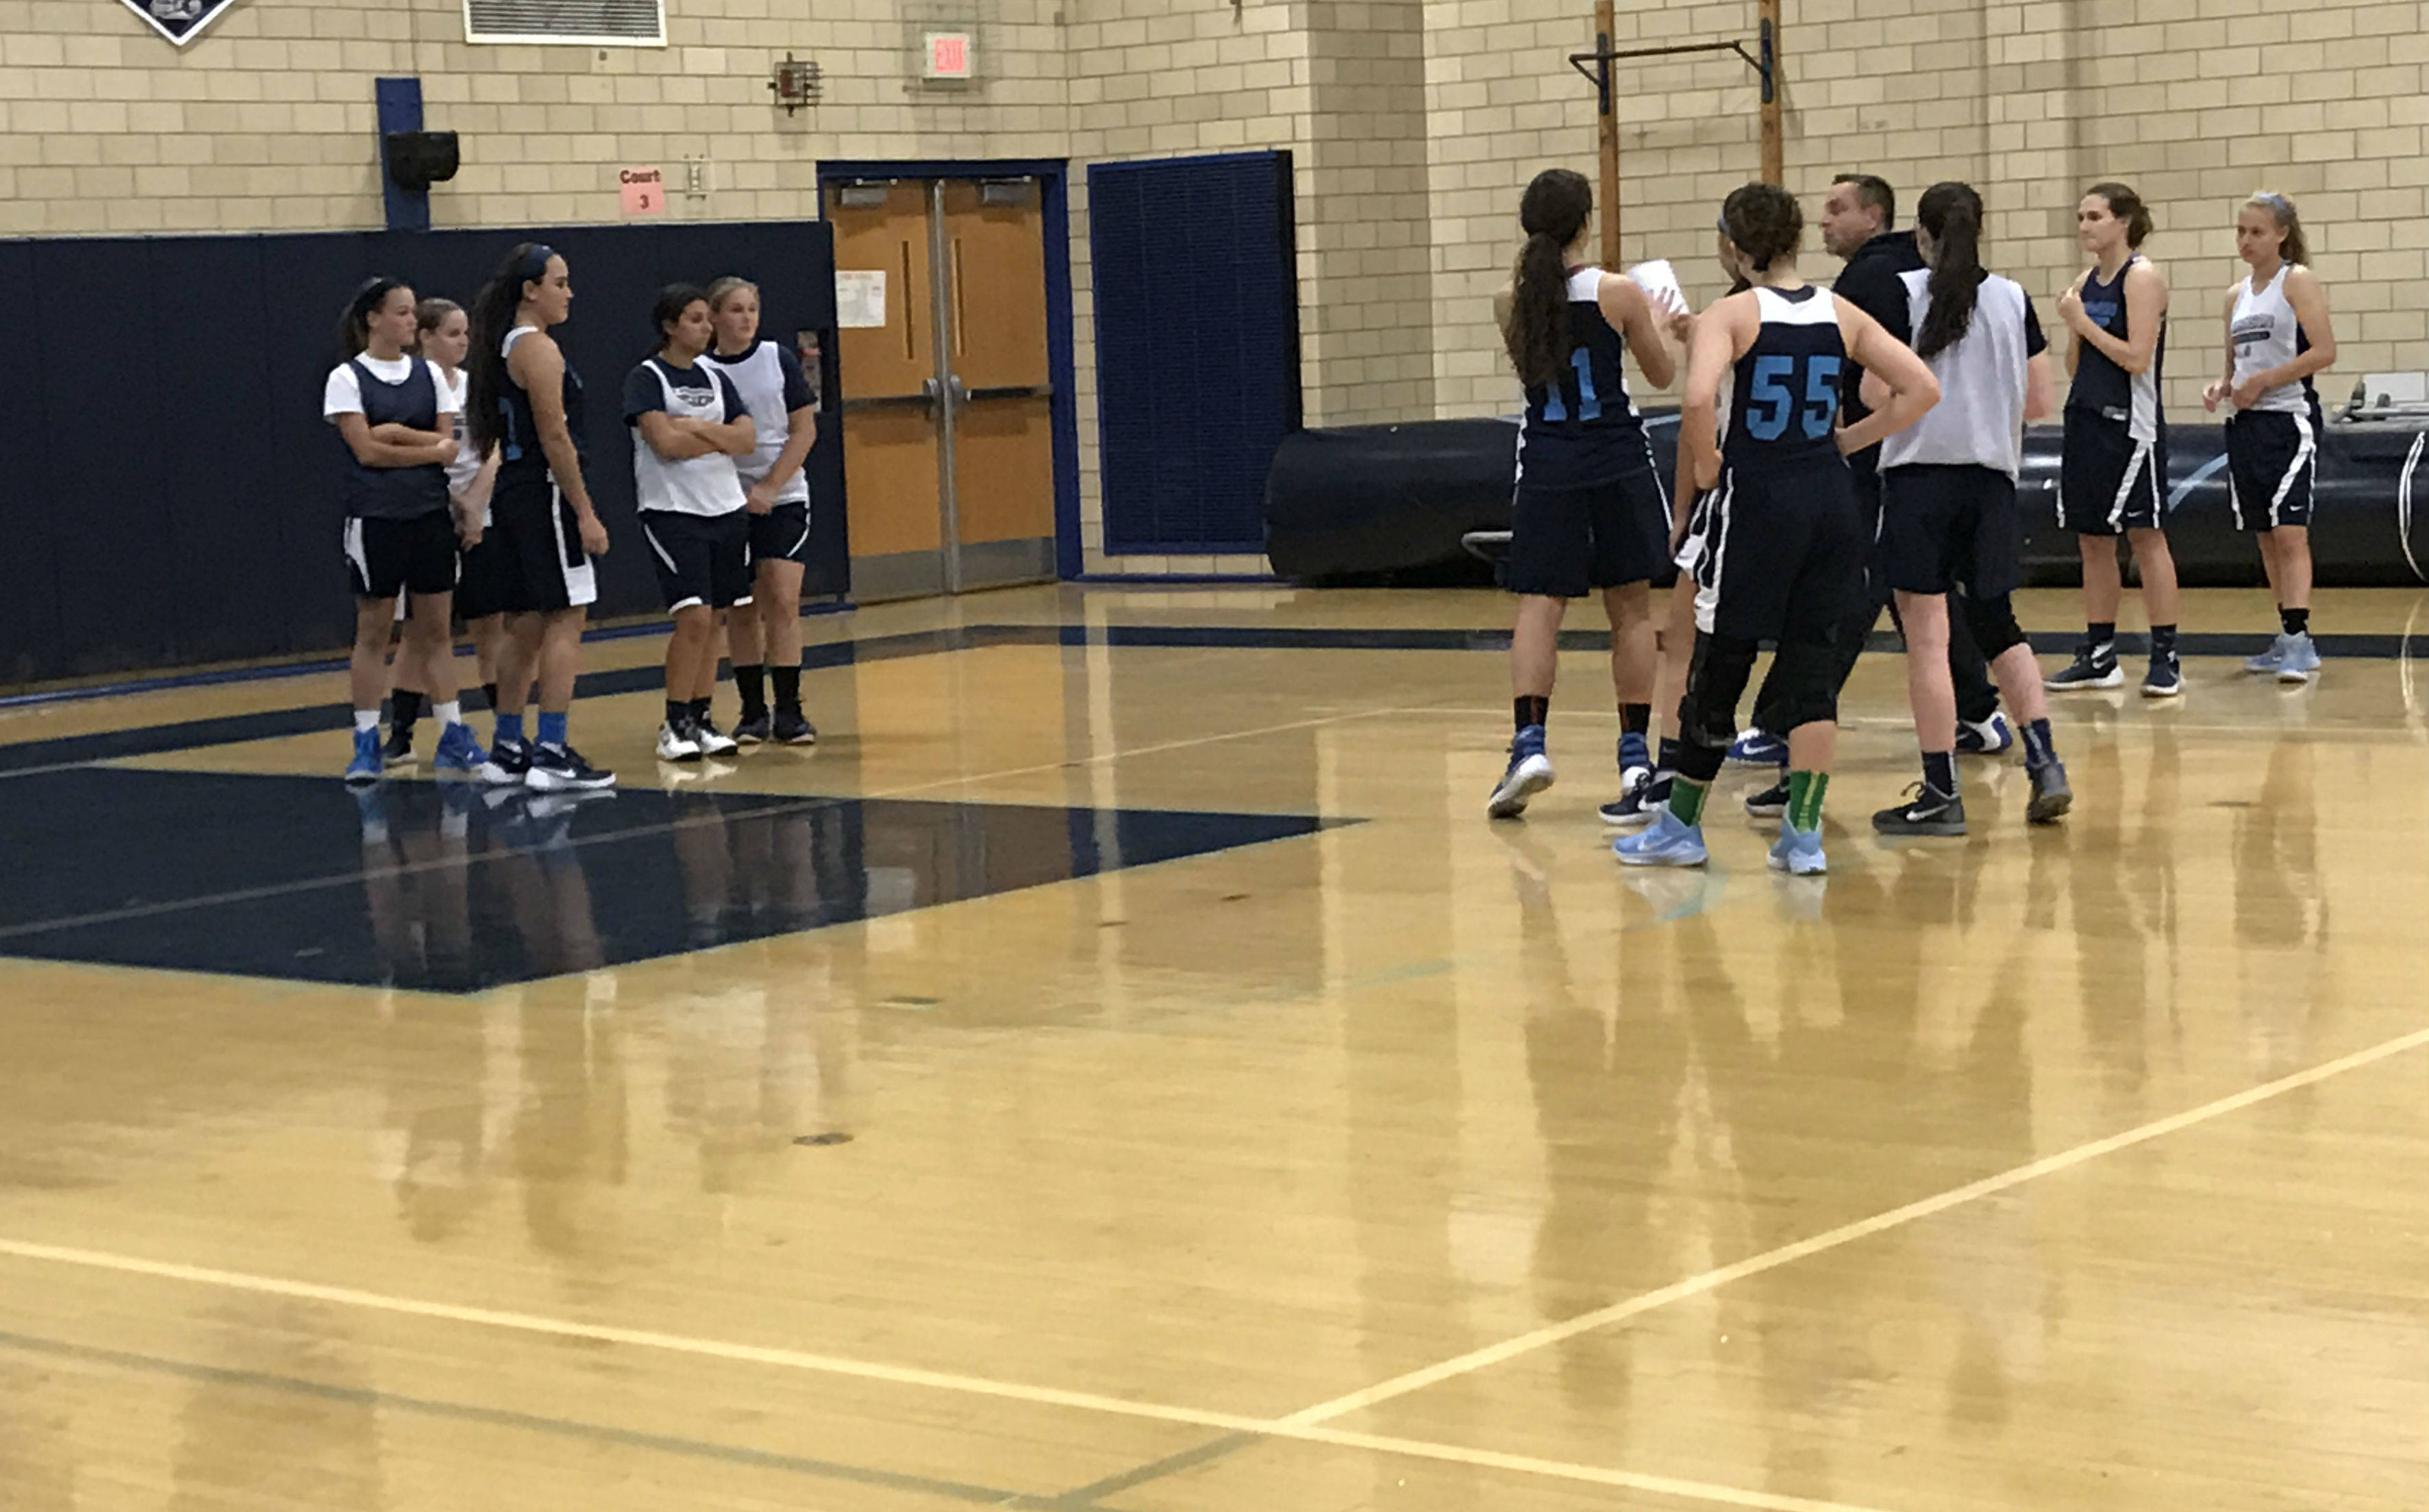 6a81ef26668c90ca37a3_ALJ_Girls_Varsity_Basketball_Preview__6.JPG